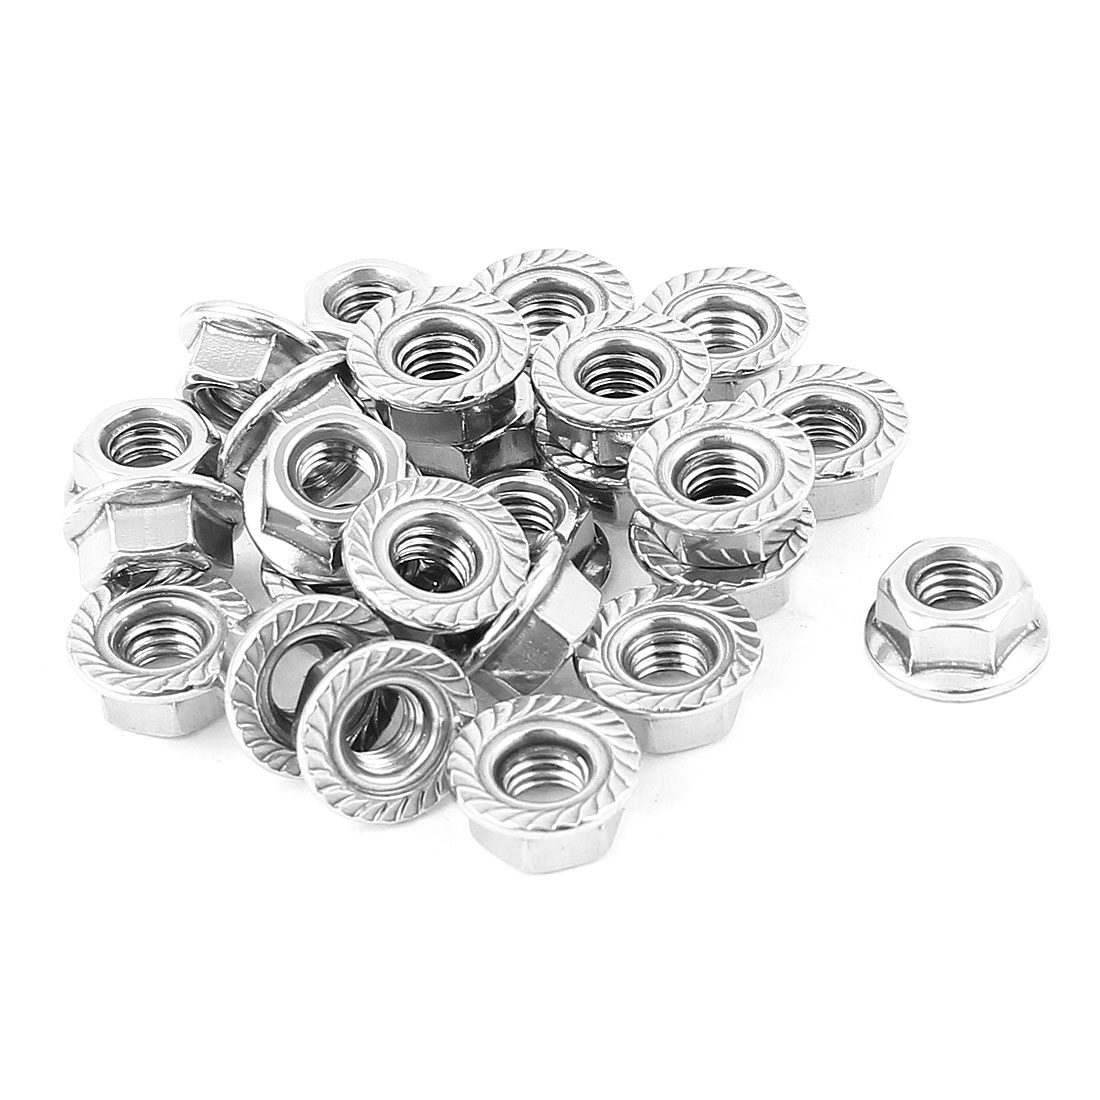 25 Pcs 13mm Dia. Head Stainless Steel Serrated Flange Metric Hex Lock Nuts M6